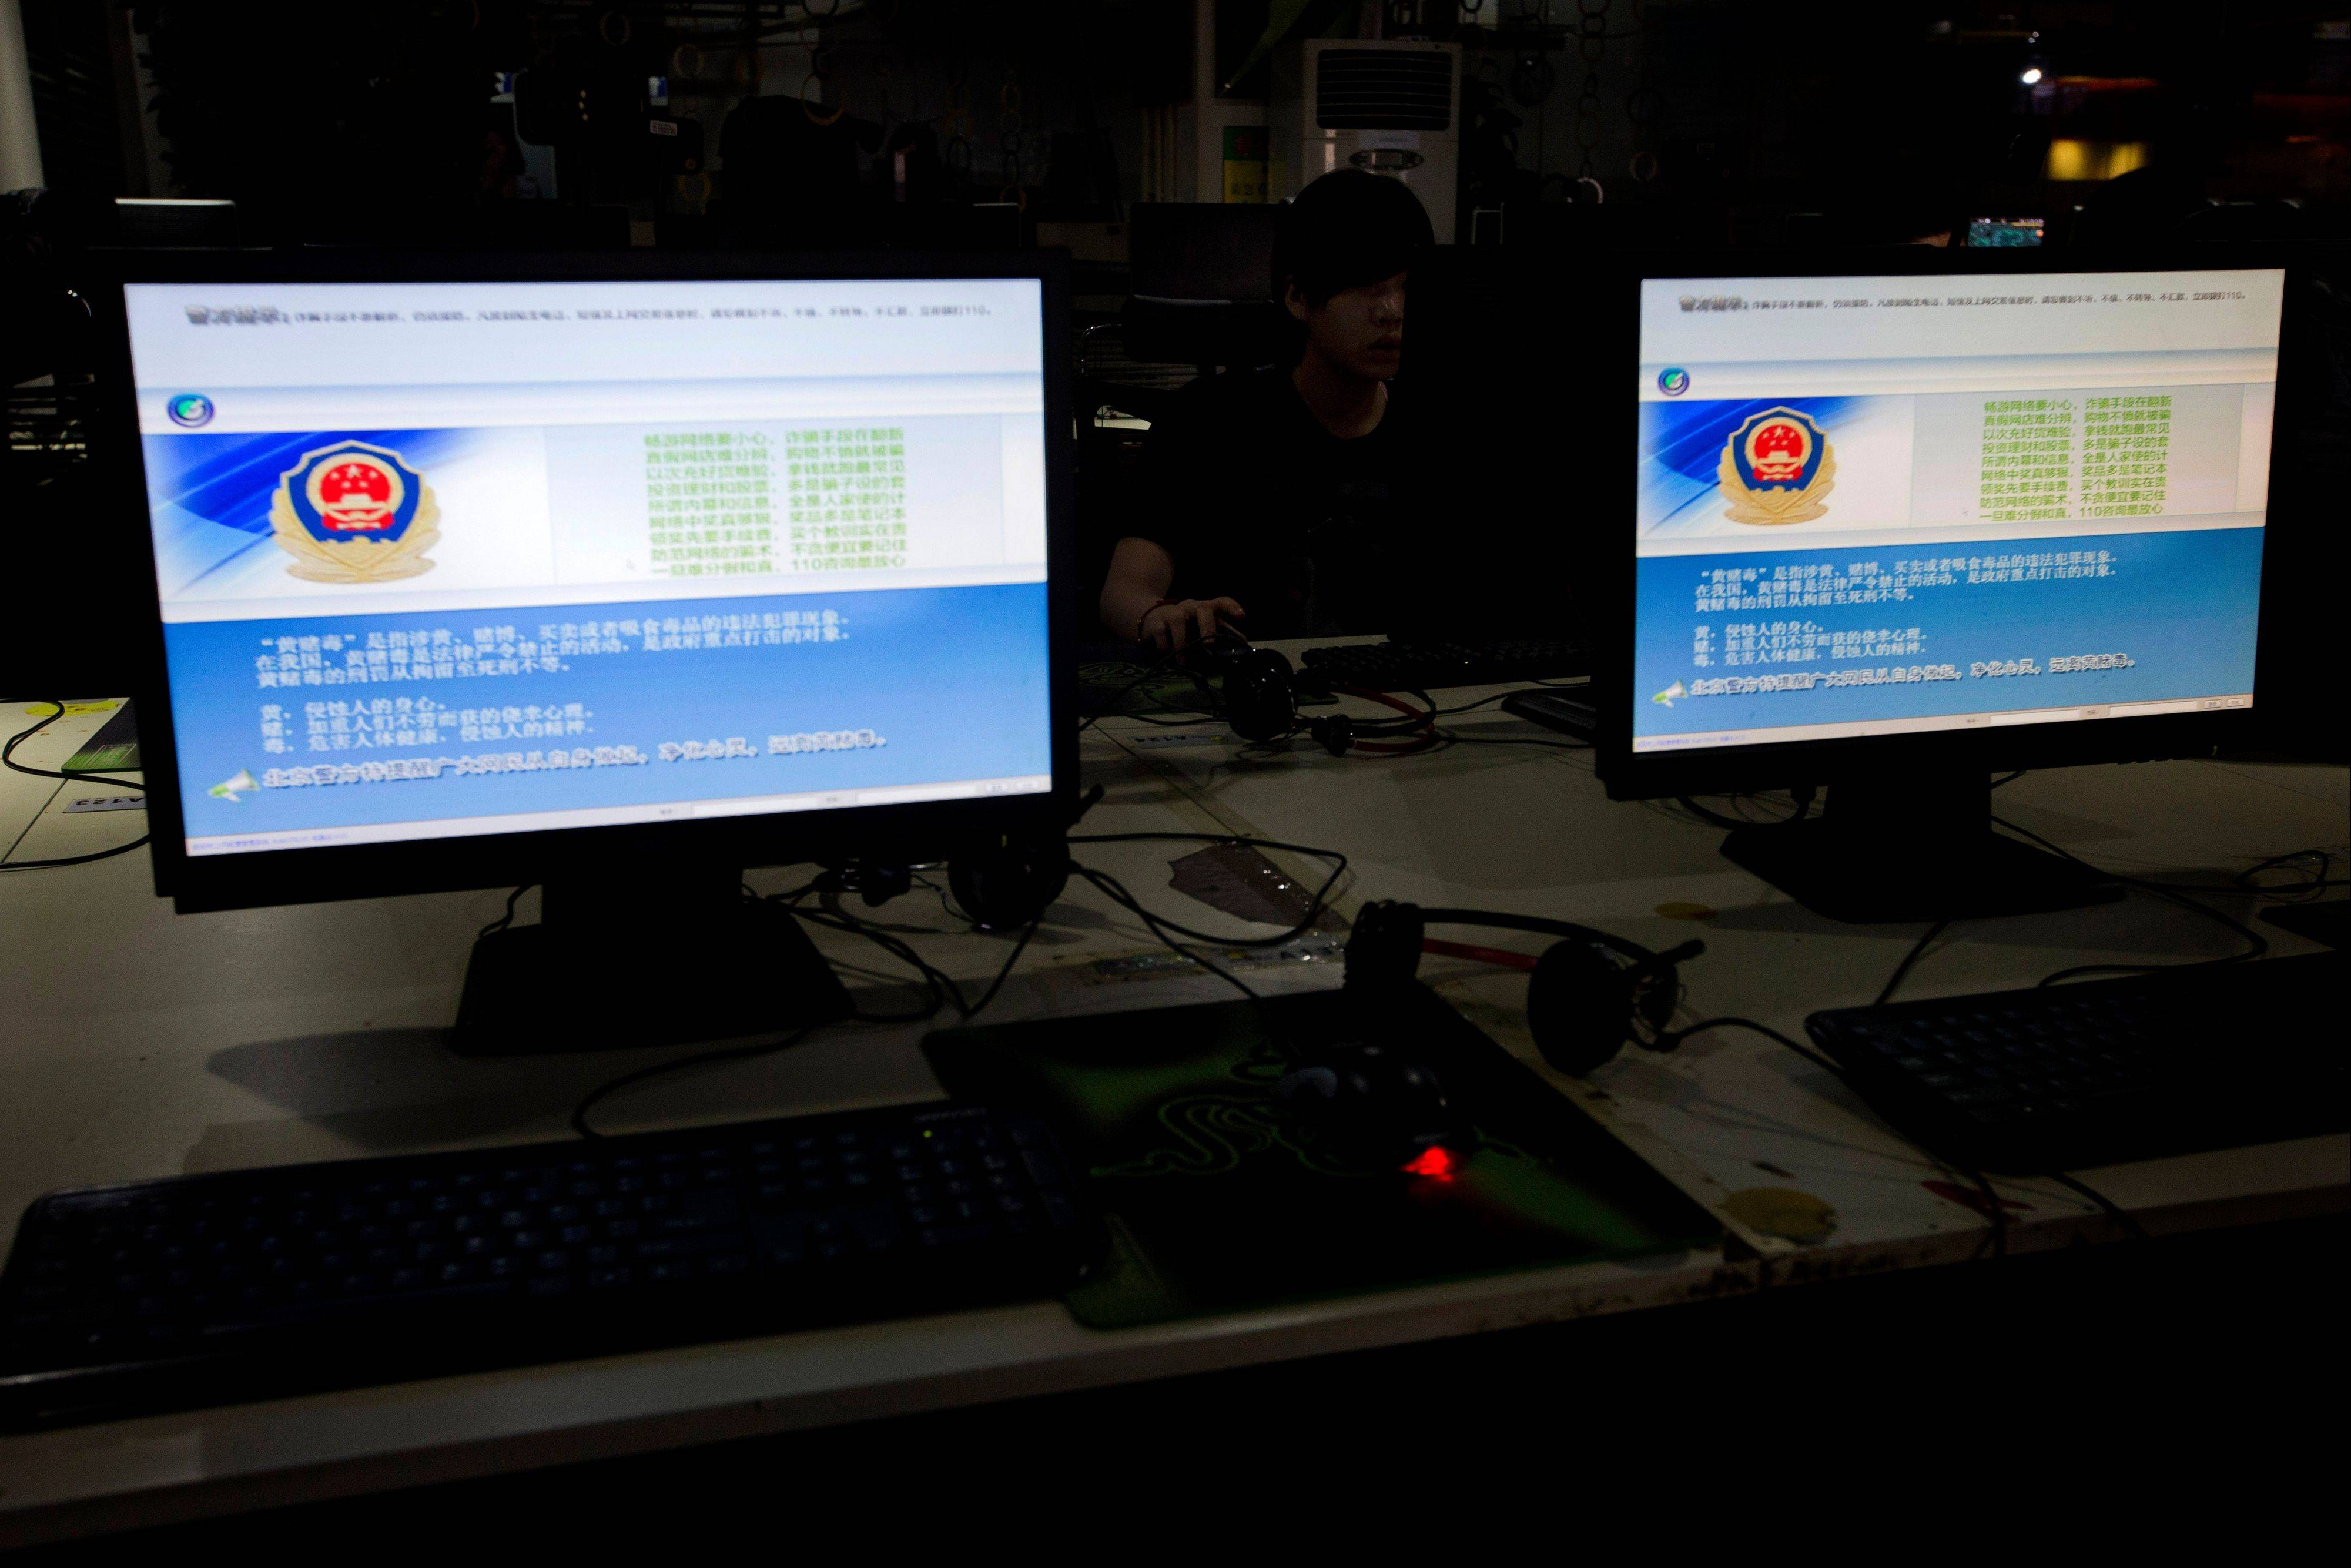 A computer user sits near displays with a message from the Chinese police on the proper use of the Internet at an Internet cafe in Beijing. Many famous Chinese -- from pop stars to scholars, journalists to business tycoons -- have amassed substantial online followings, and these larger-than-life personalities don't always hew to the Communist Party line. Now Beijing is tightening its grip on China's already heavily restricted Internet by making influential microbloggers uncomfortable when they post material the government doesn't like.